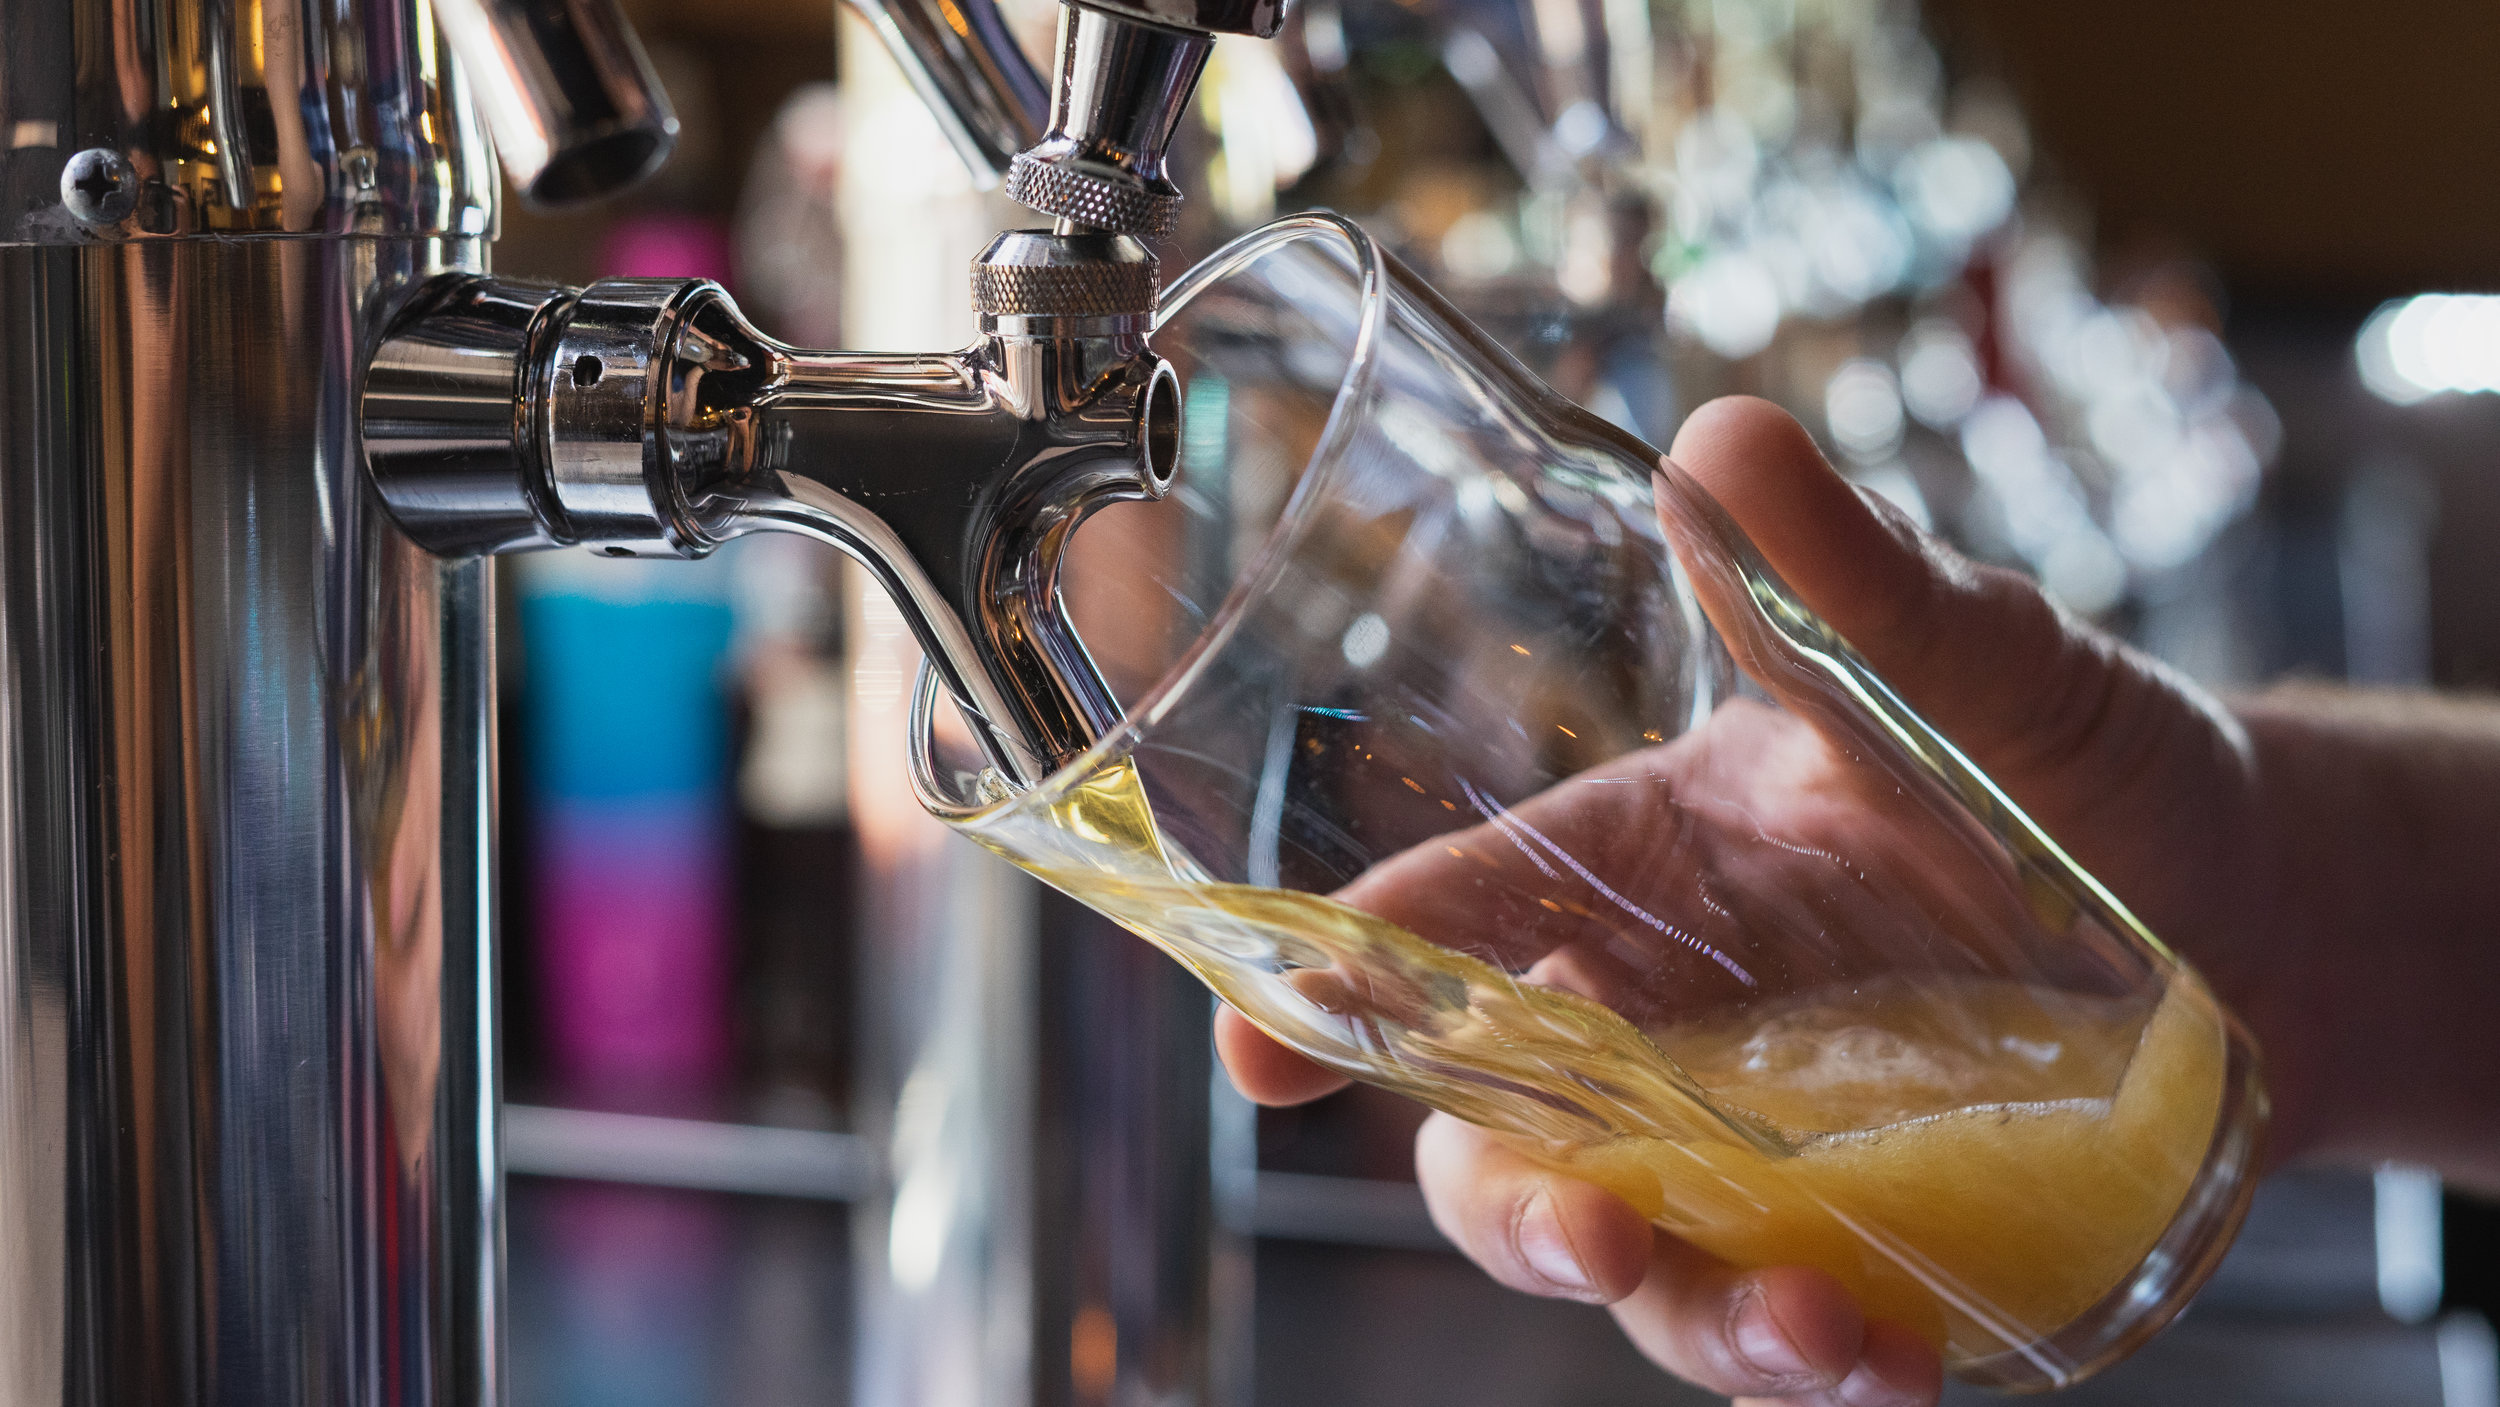 Bartender-pouring-a-beer-from-the-tap-998715732_6000x3376.jpg